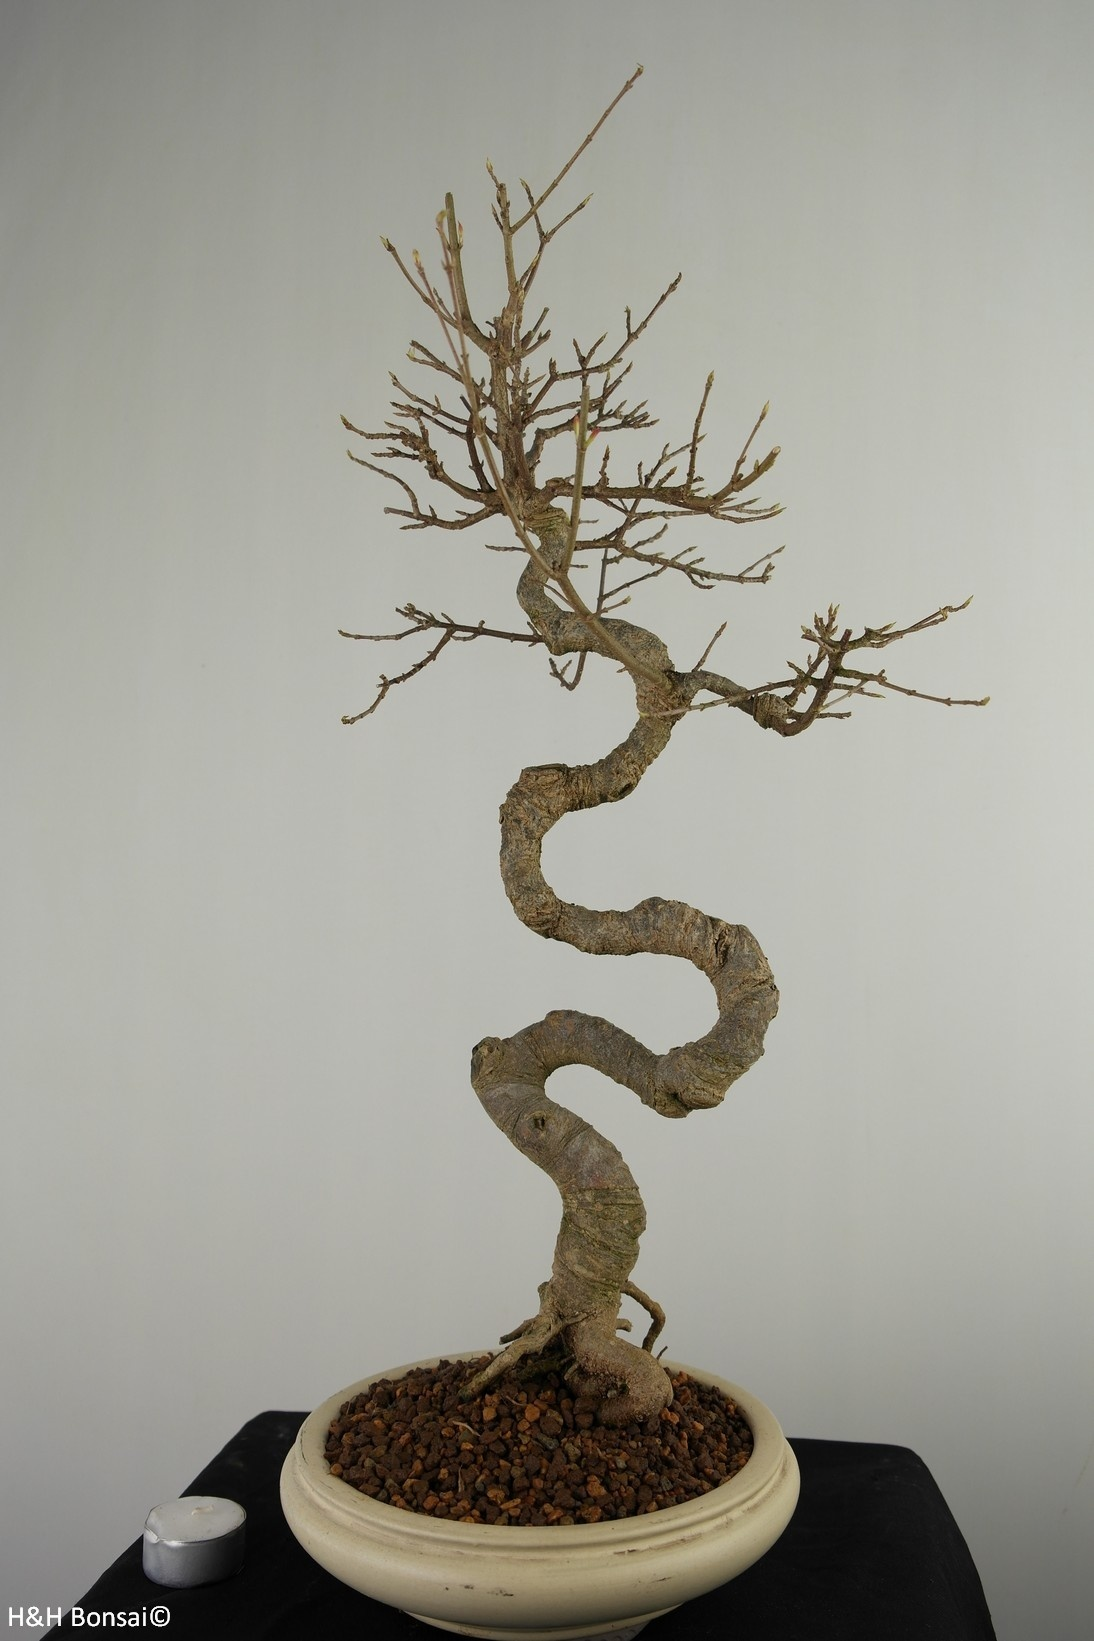 Bonsai L'Erable de Burger, Acer buergerianum, no. 7520